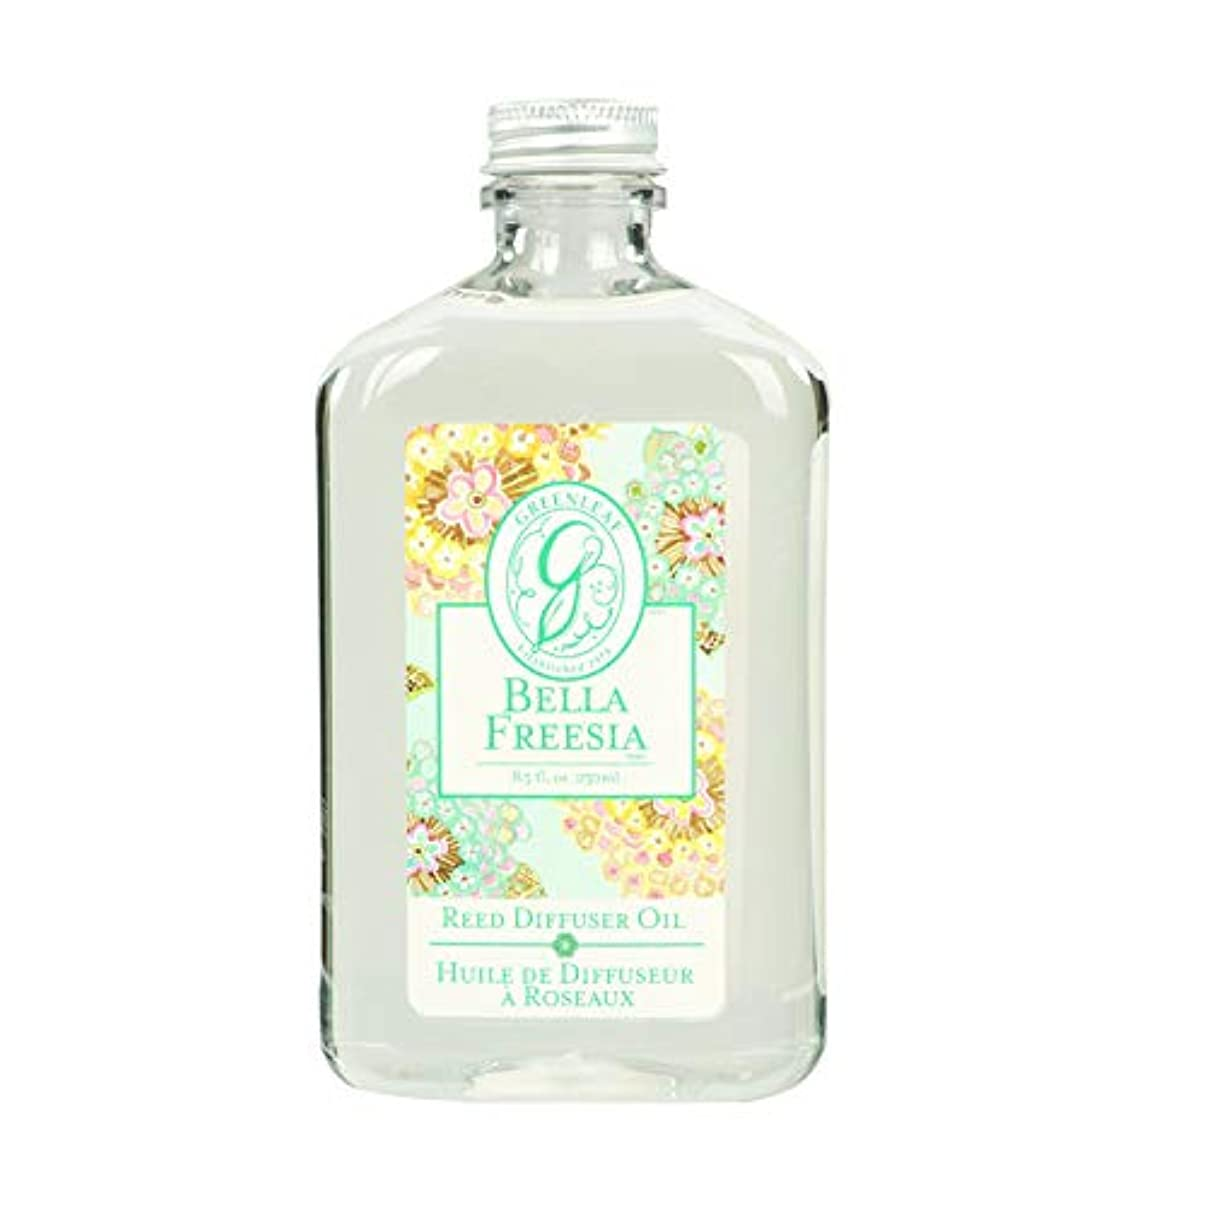 非アクティブ閉じるディベートGREEN LEAF REED DIFFUSER OIL REFILL BELLA FREESIA